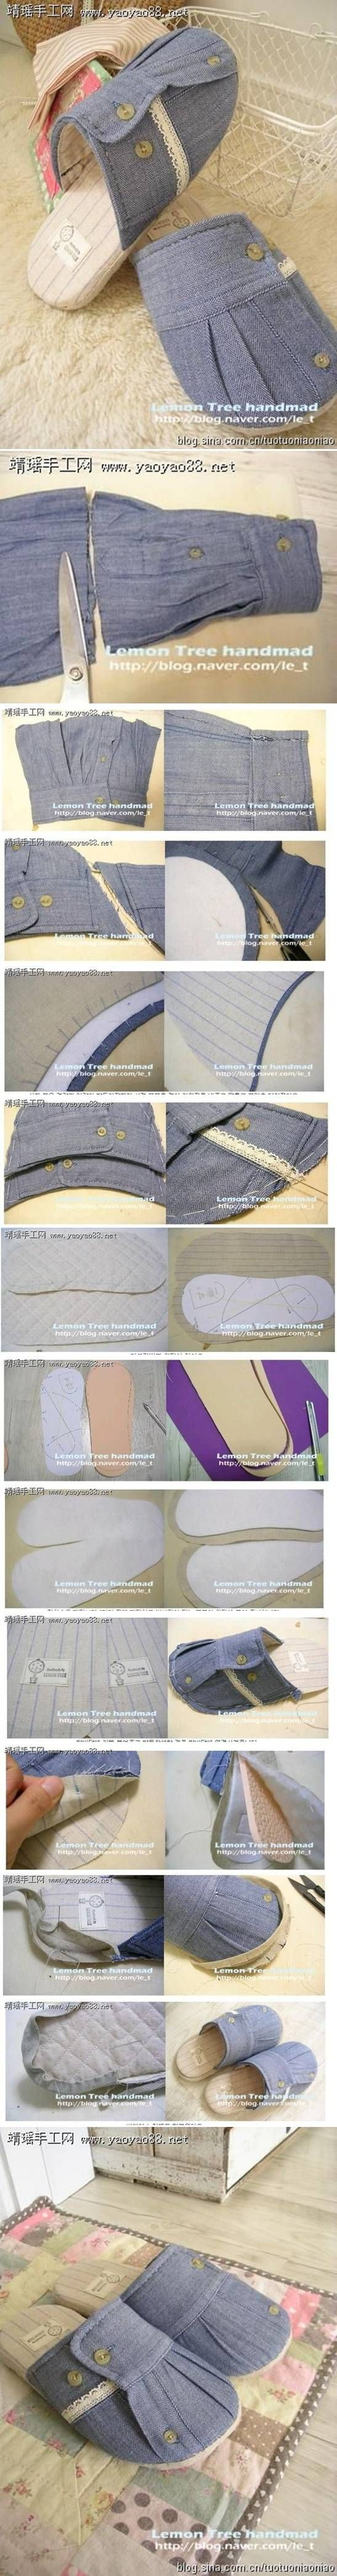 DIY Making Slippers From Old Clothes http://www.fabdiy.com/diy-making-slippers-from-old-clothes/